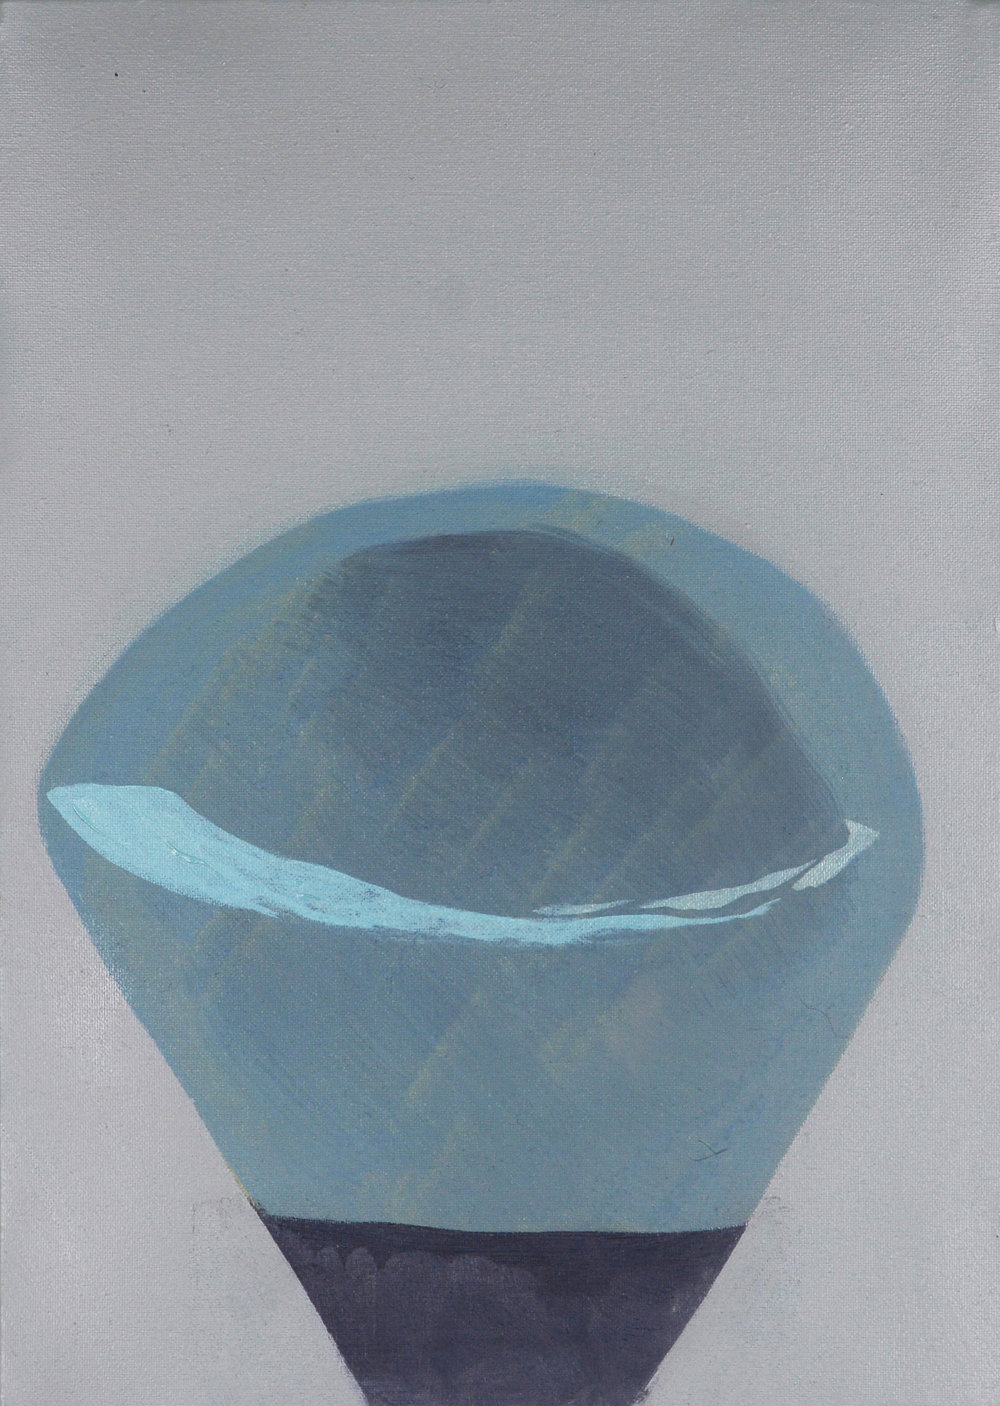 Pin Head, 2013, Oil on canvas, 35 x 25 cm